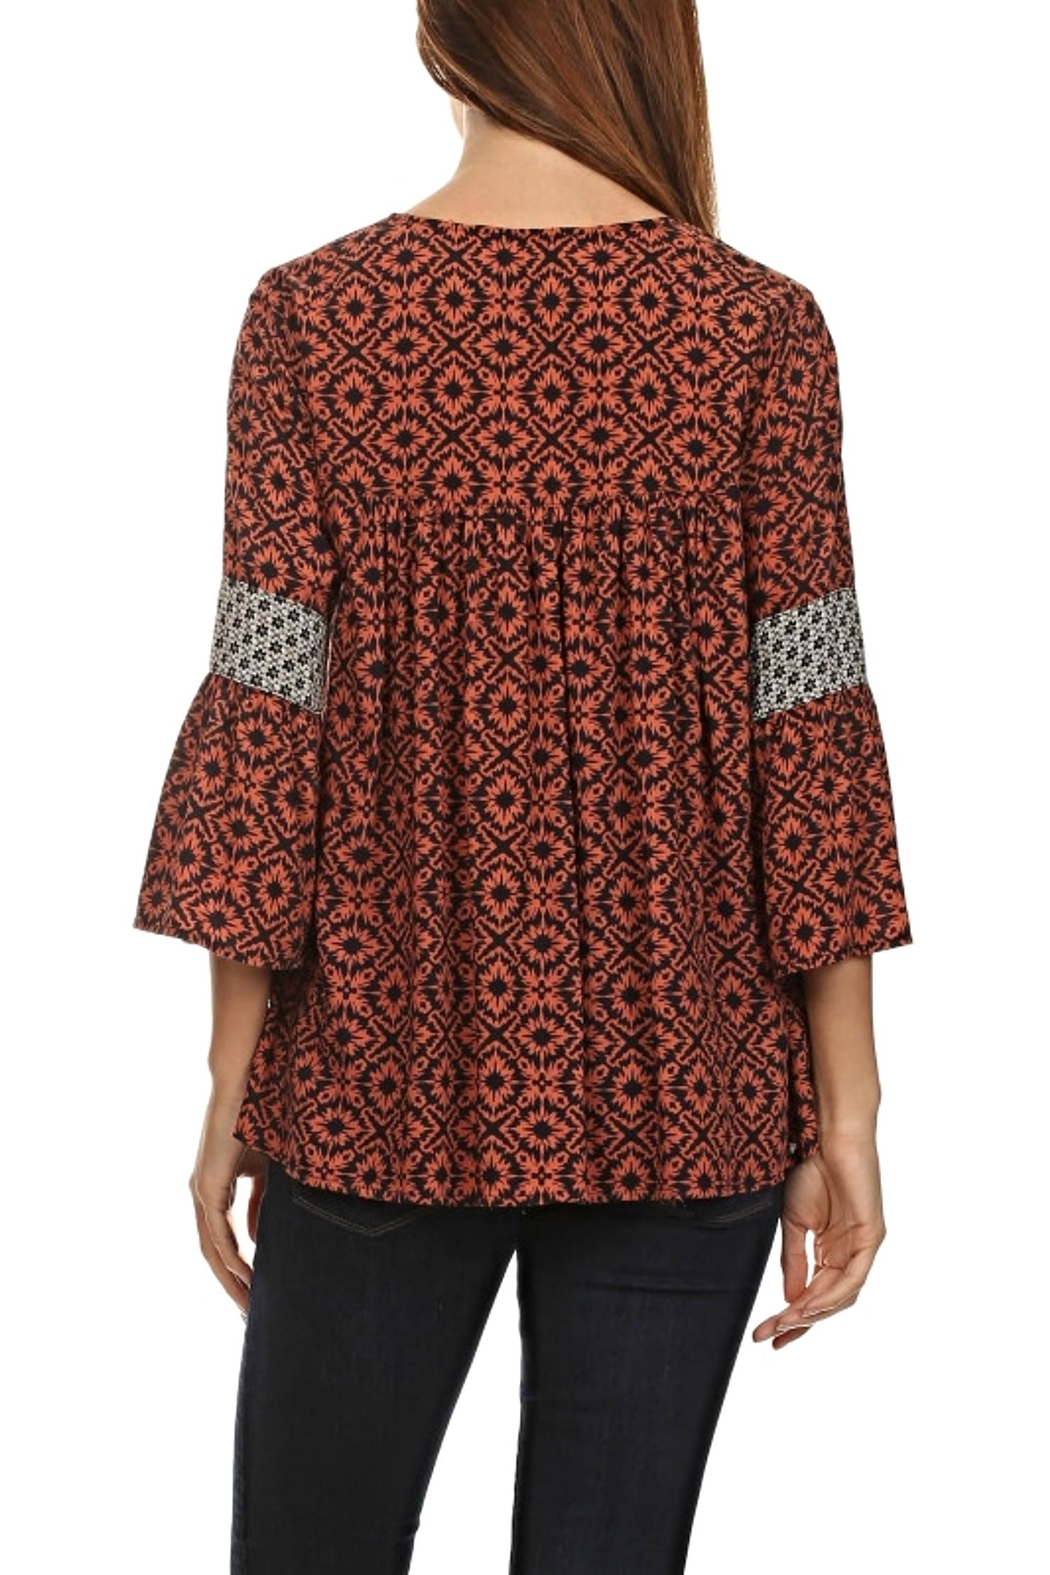 LE SAMPLE Fall Pattern Blouse - Front Full Image